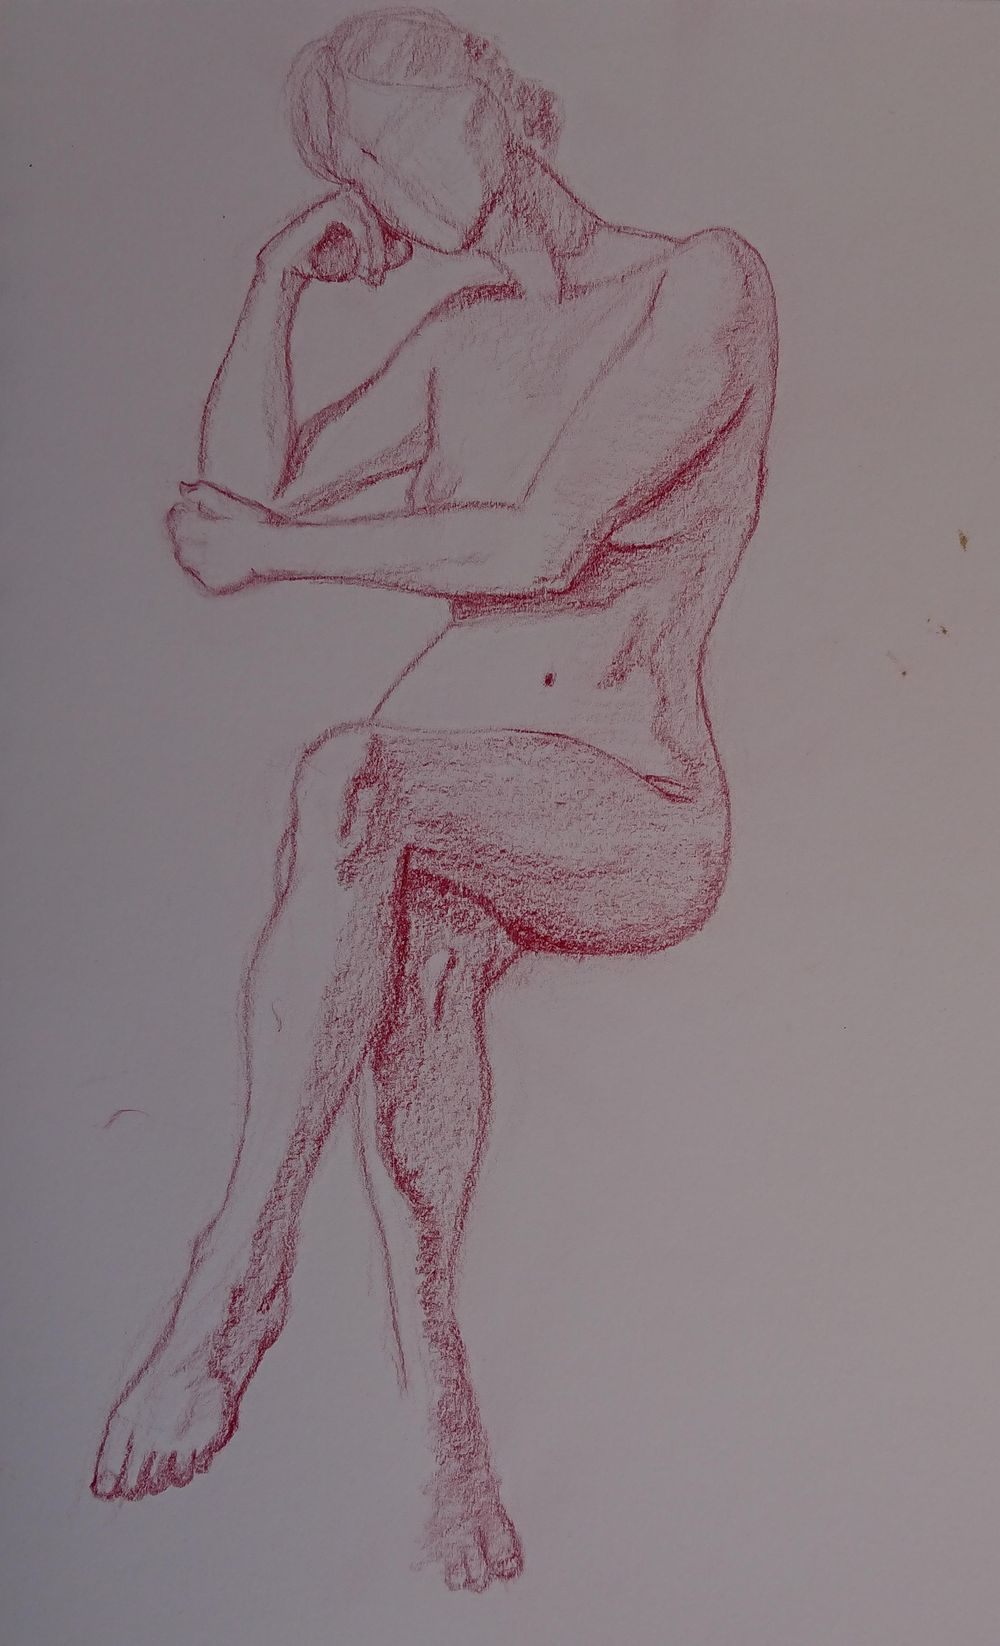 Gesture and the stuff I learned! - image 3 - student project